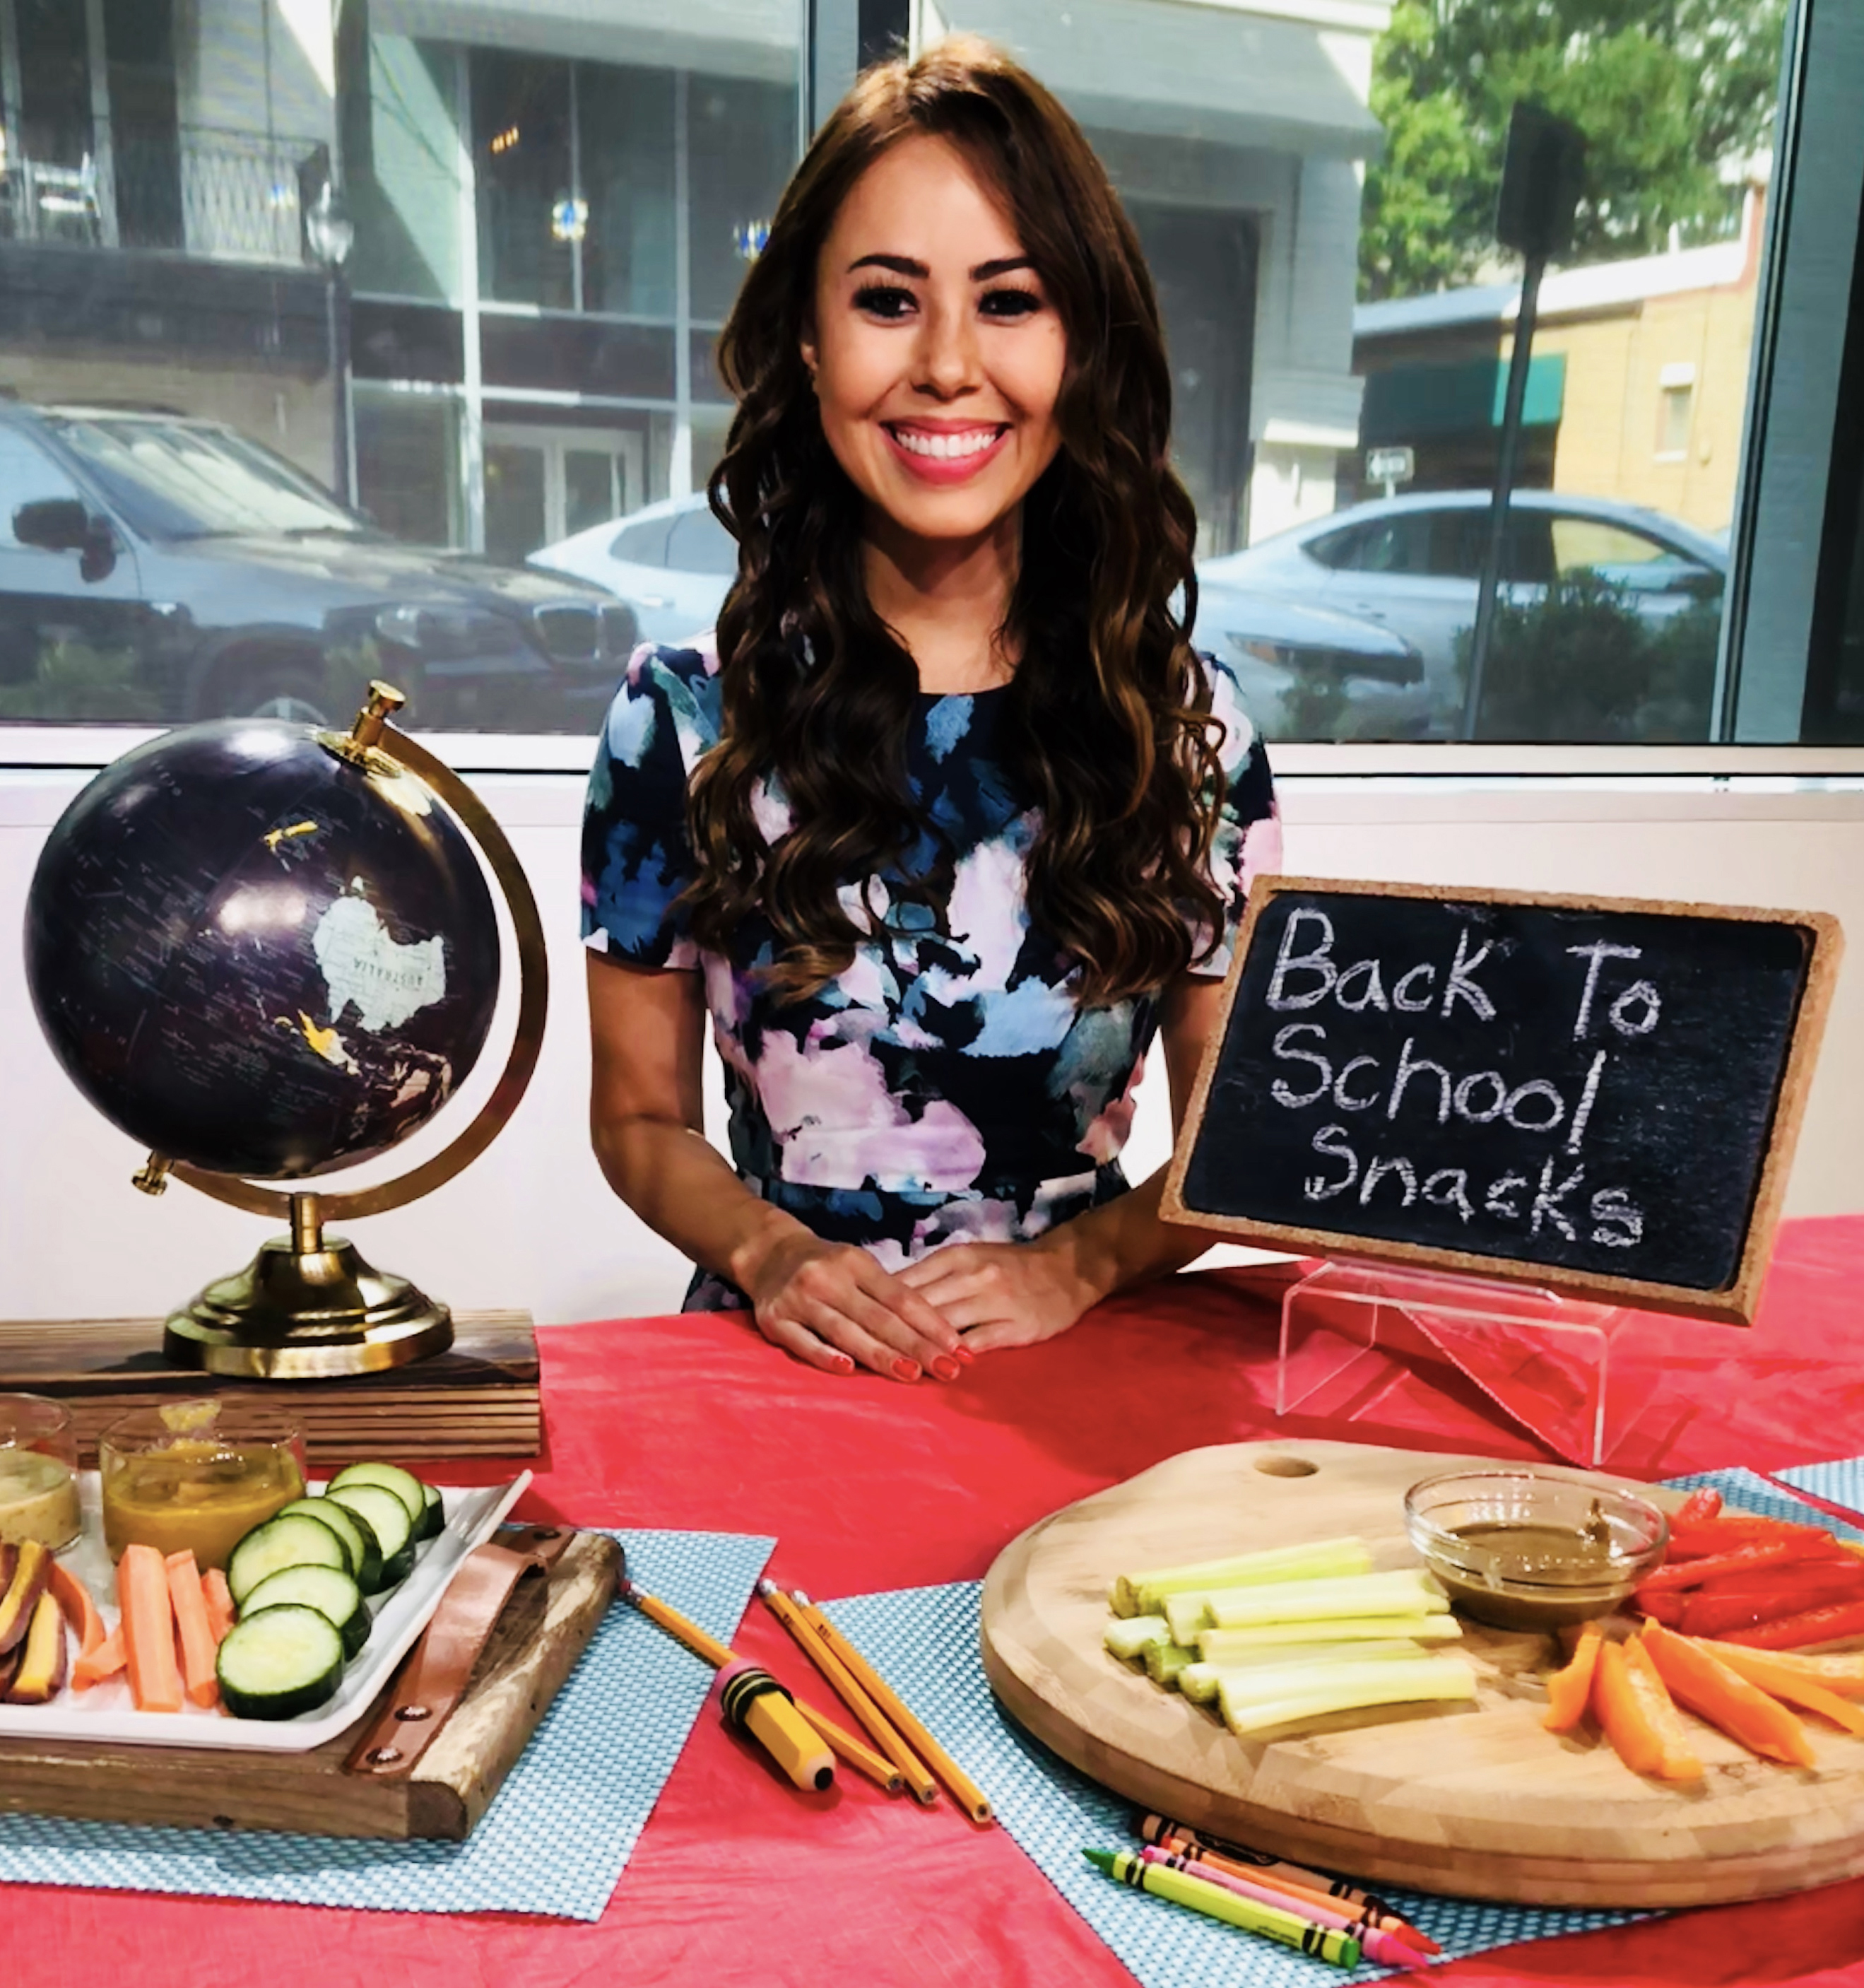 Registered Dietitian Mia Syn TV SunButter, O'Dang Hummus Dressings, Borden Cheese, Tio Gazpacho and Northwest Cherry Growers